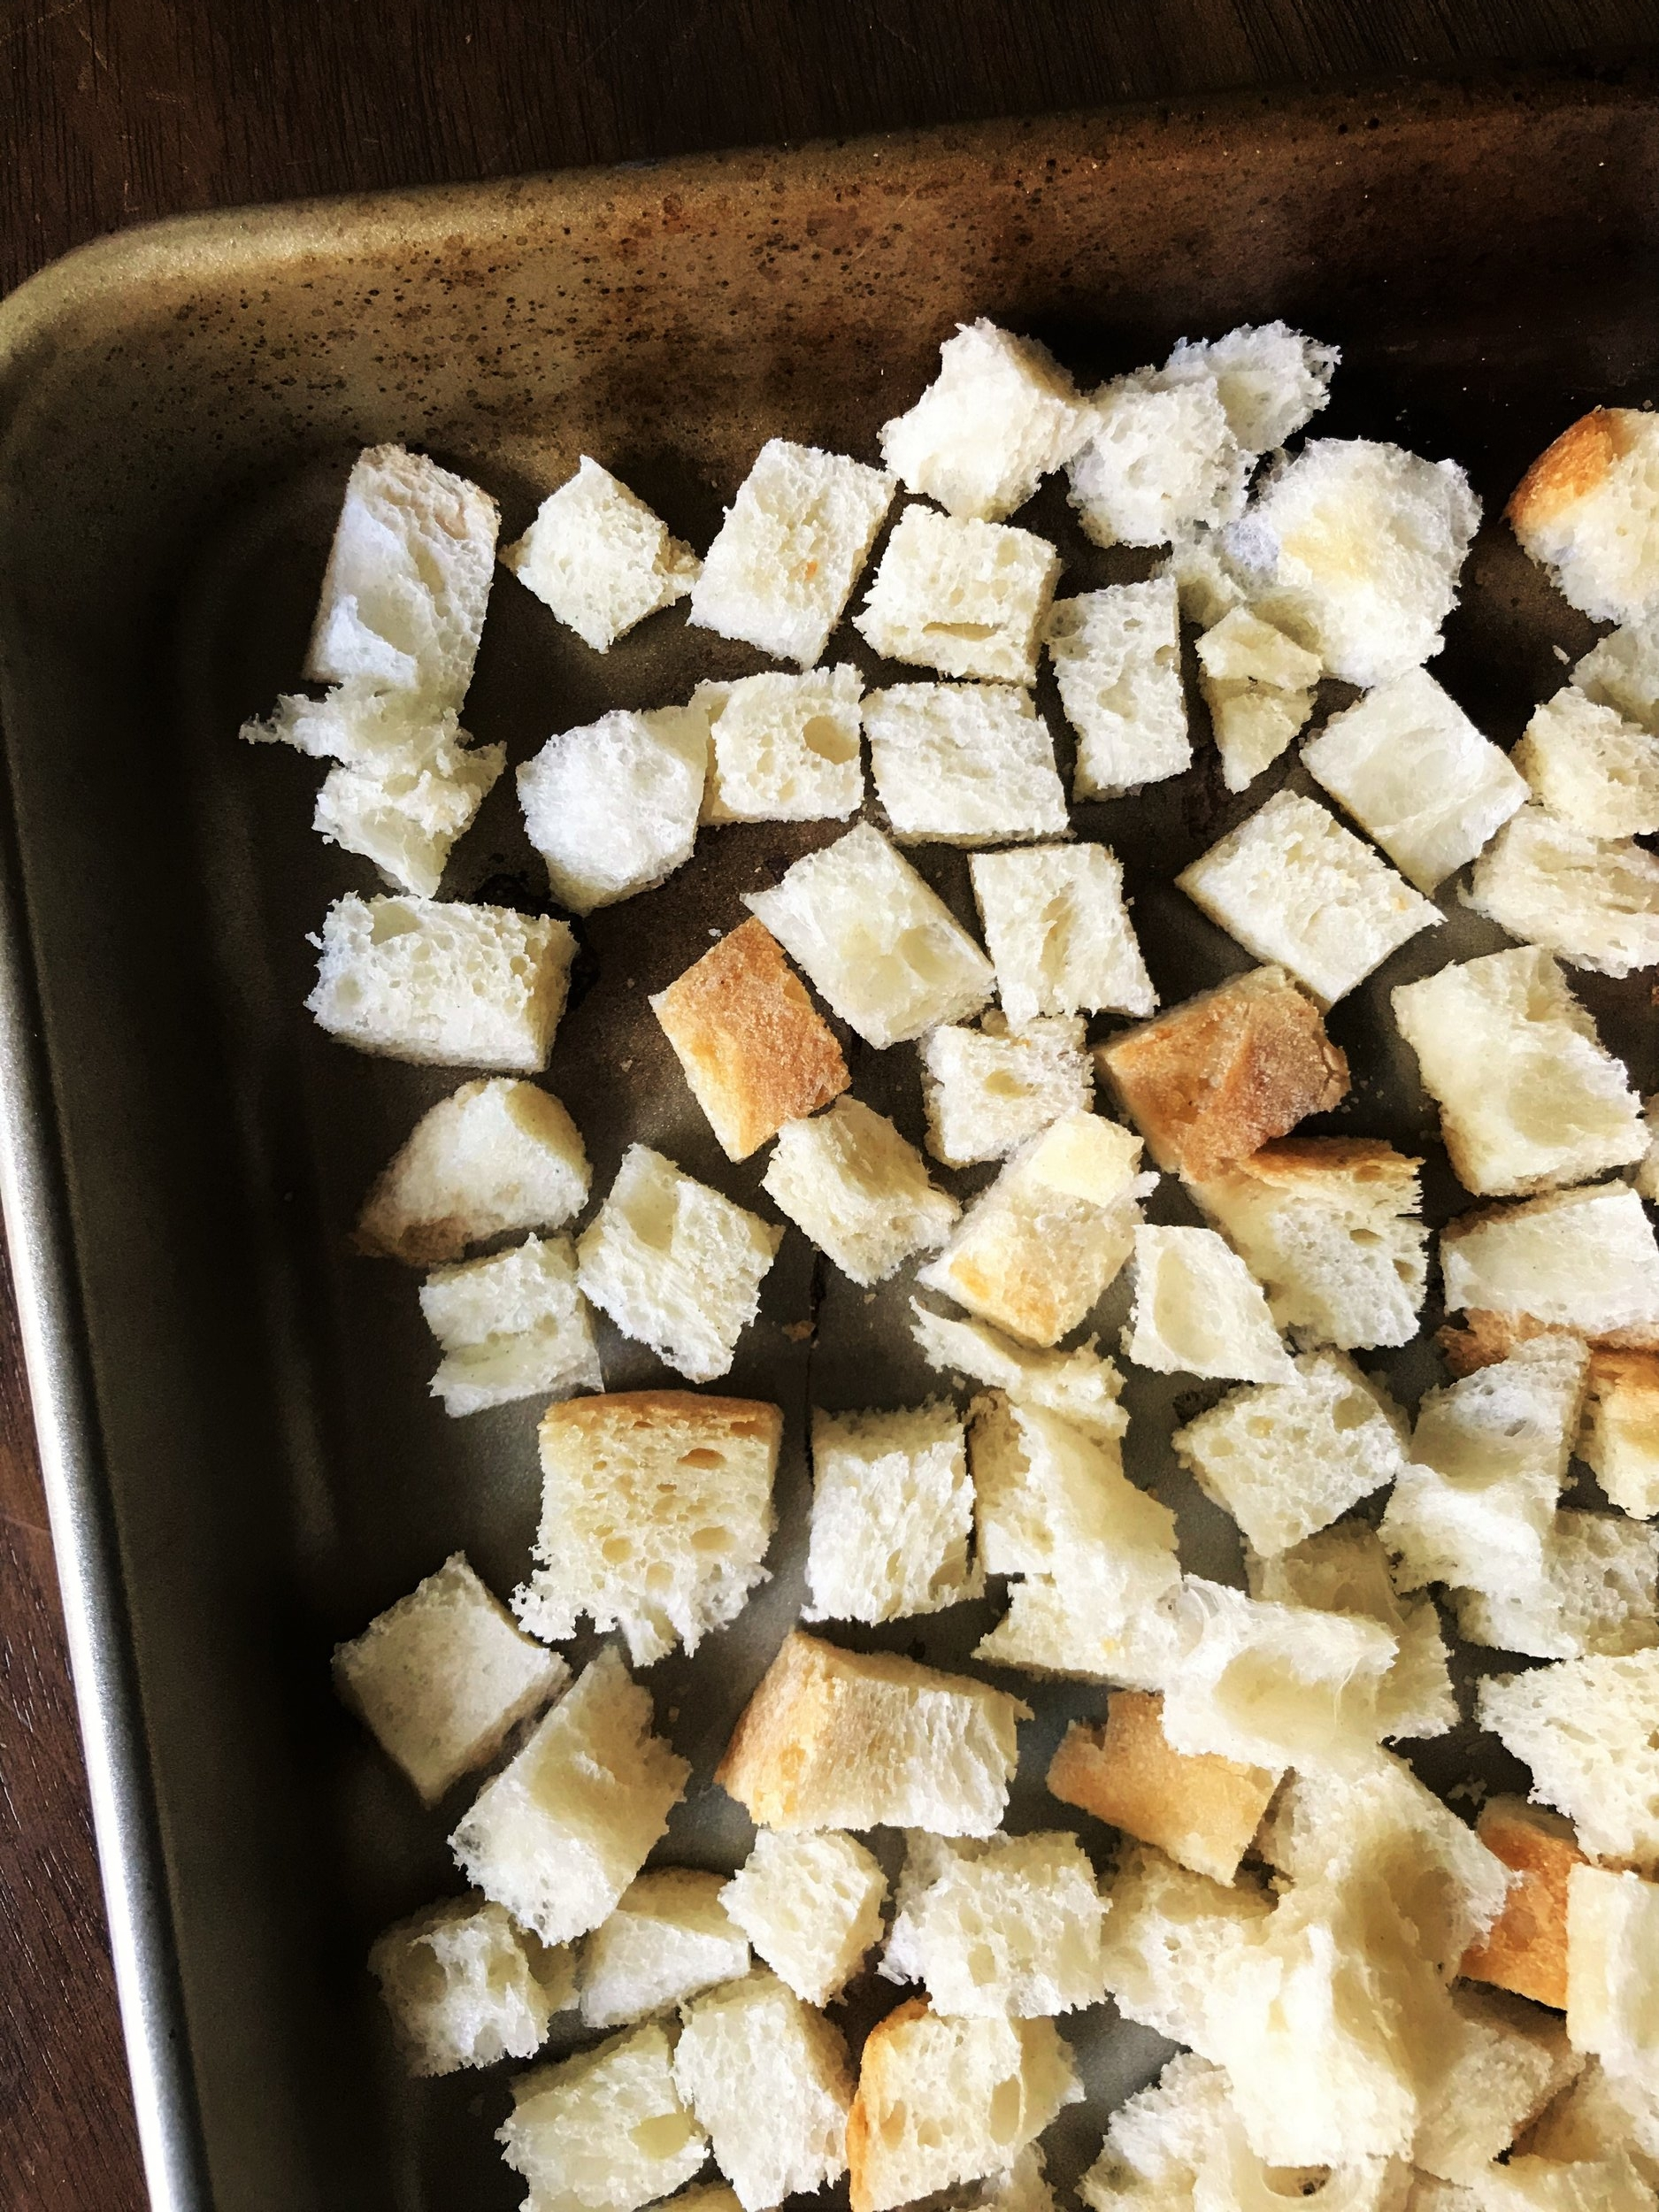 Cubed bread for stuffing, spread out on a baking sheet to dry out.